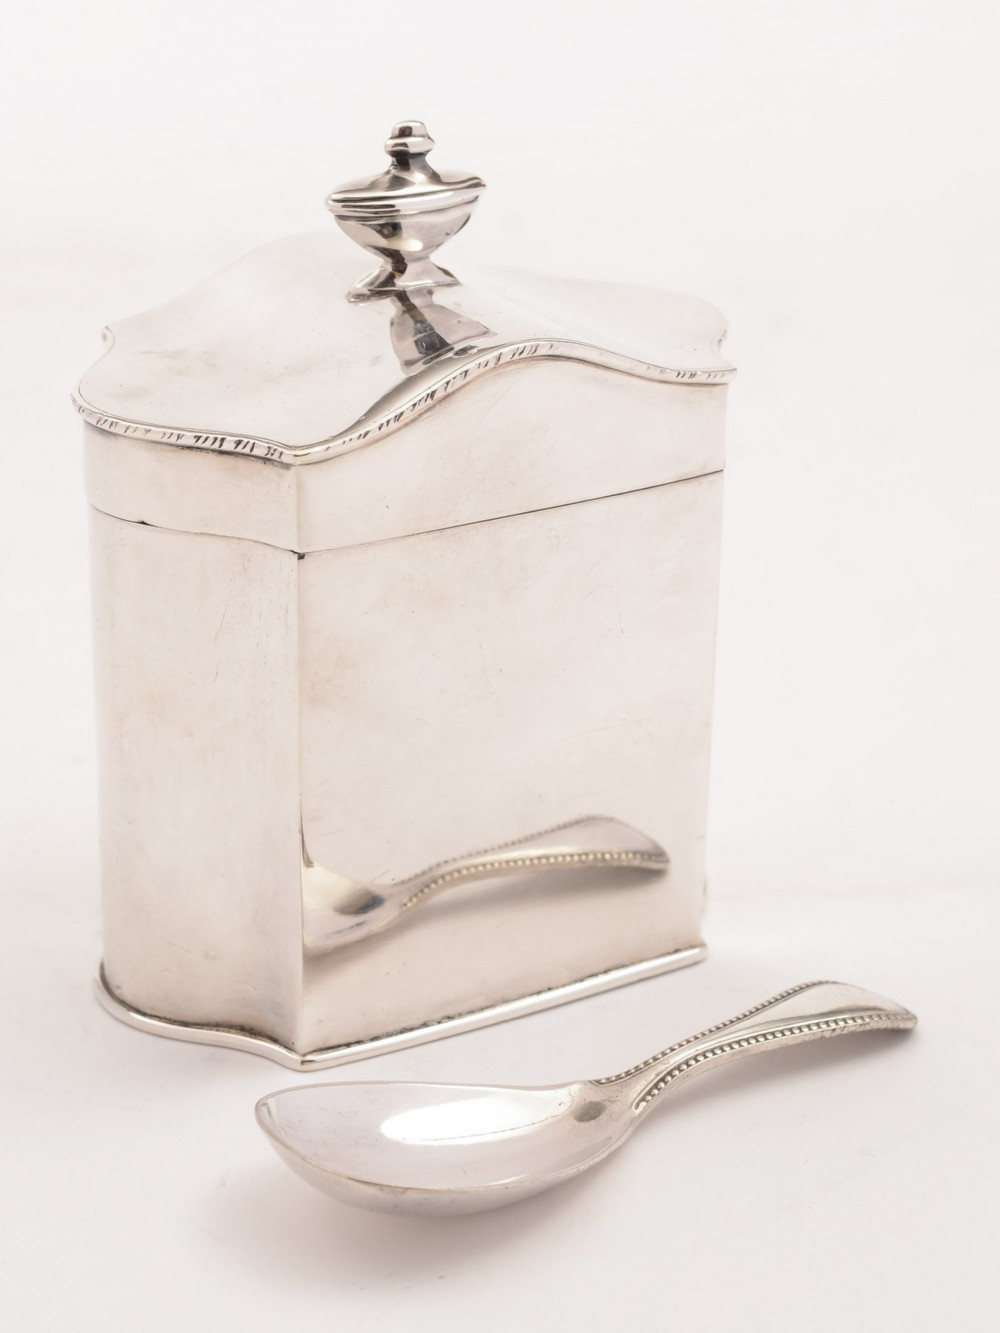 edwardian silver plated tea caddy with spoon circa 1905